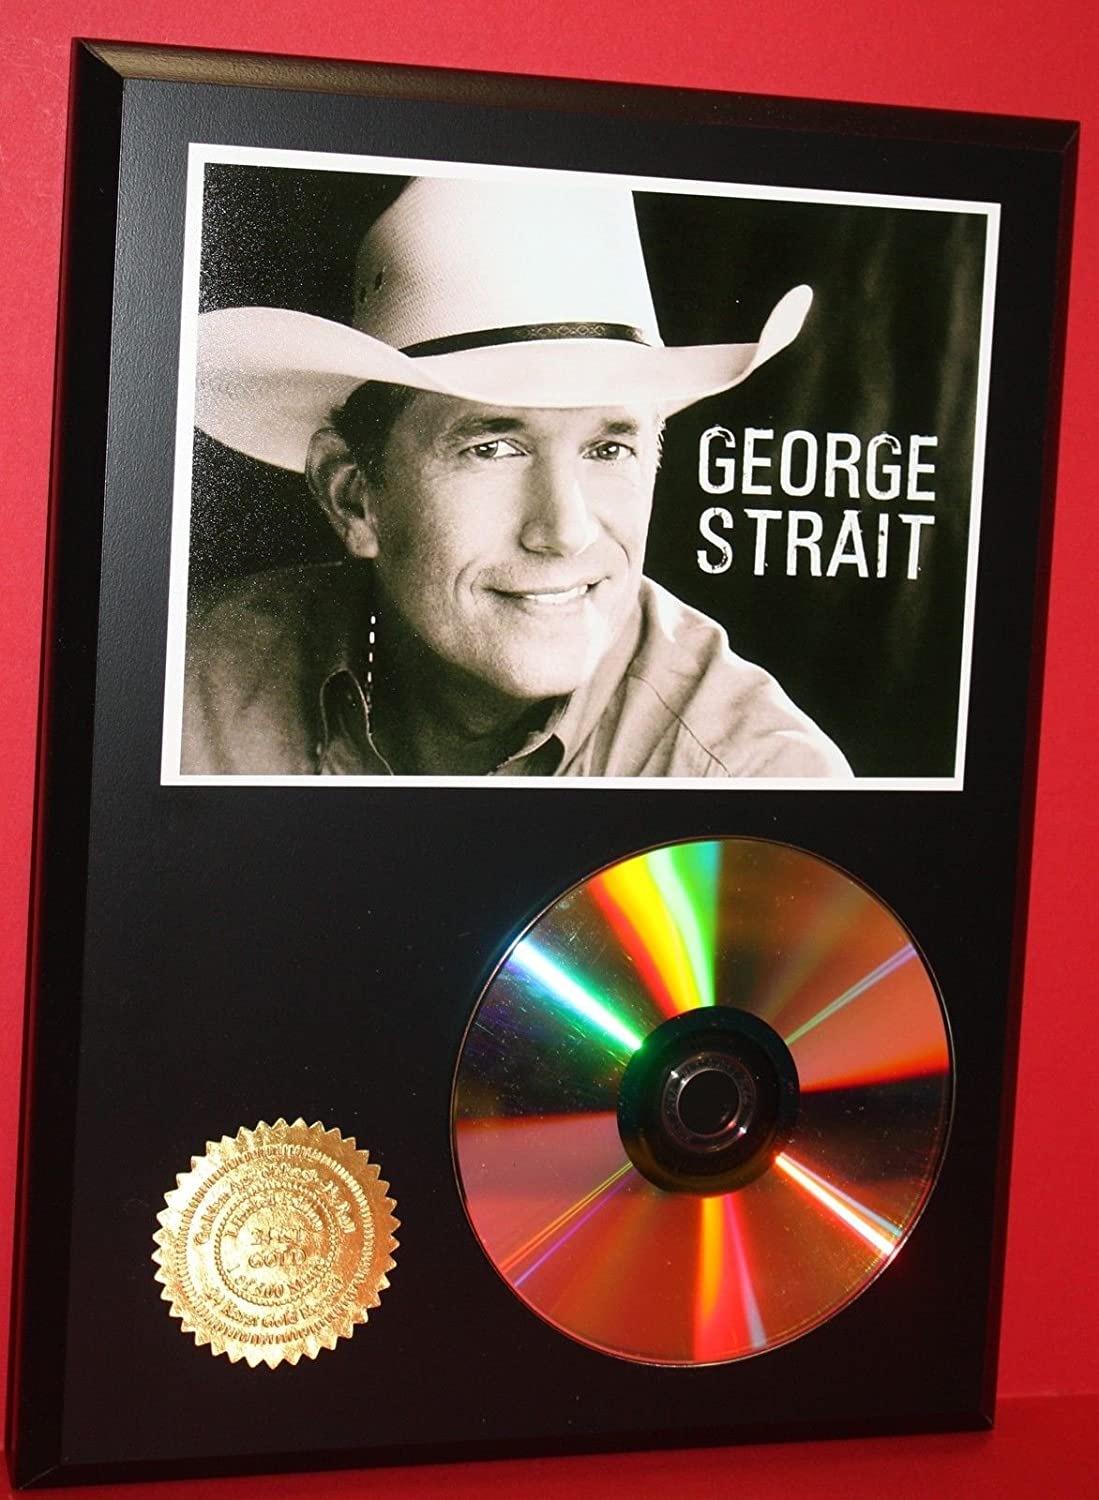 George Strait 24KT Gold Cd/Disc Collectible Rare Award Quality Plaque Gift